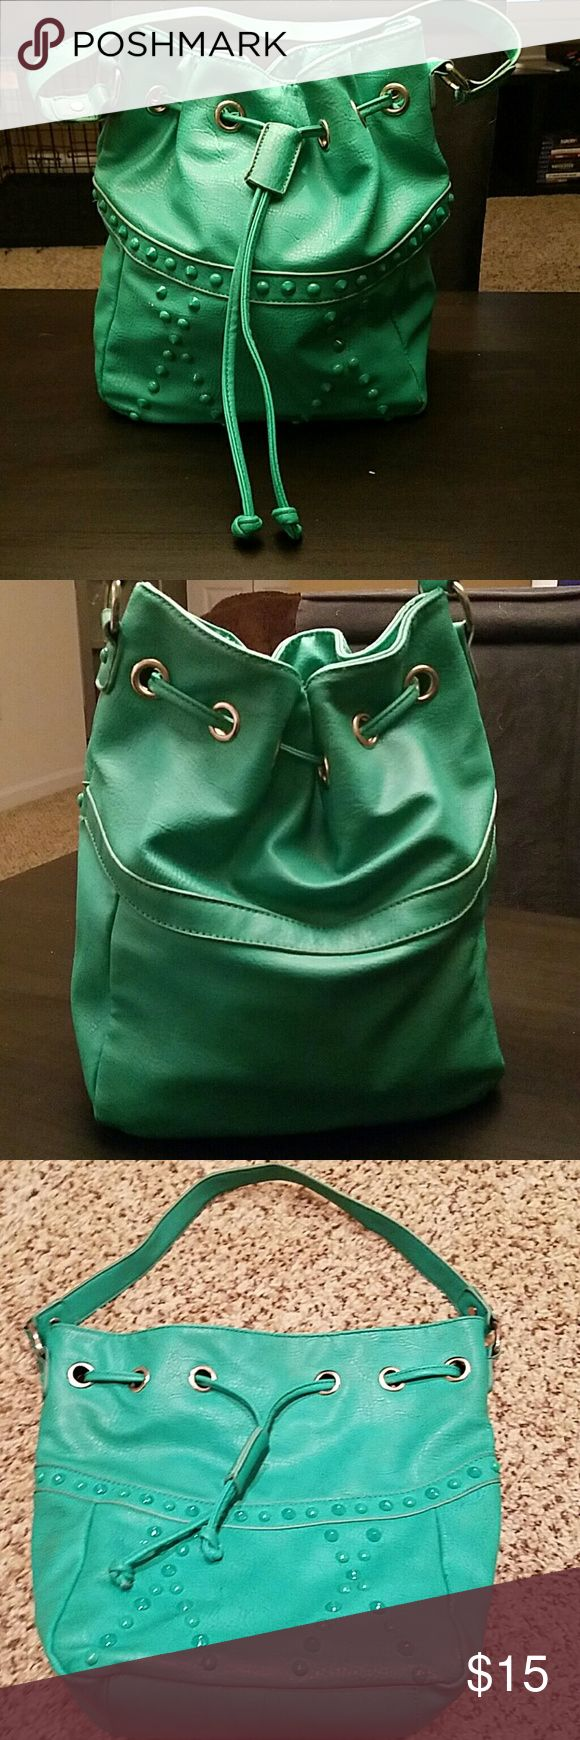 Teal studded purse Teal studded purse Shoe Dazzle Bags Shoulder Bags